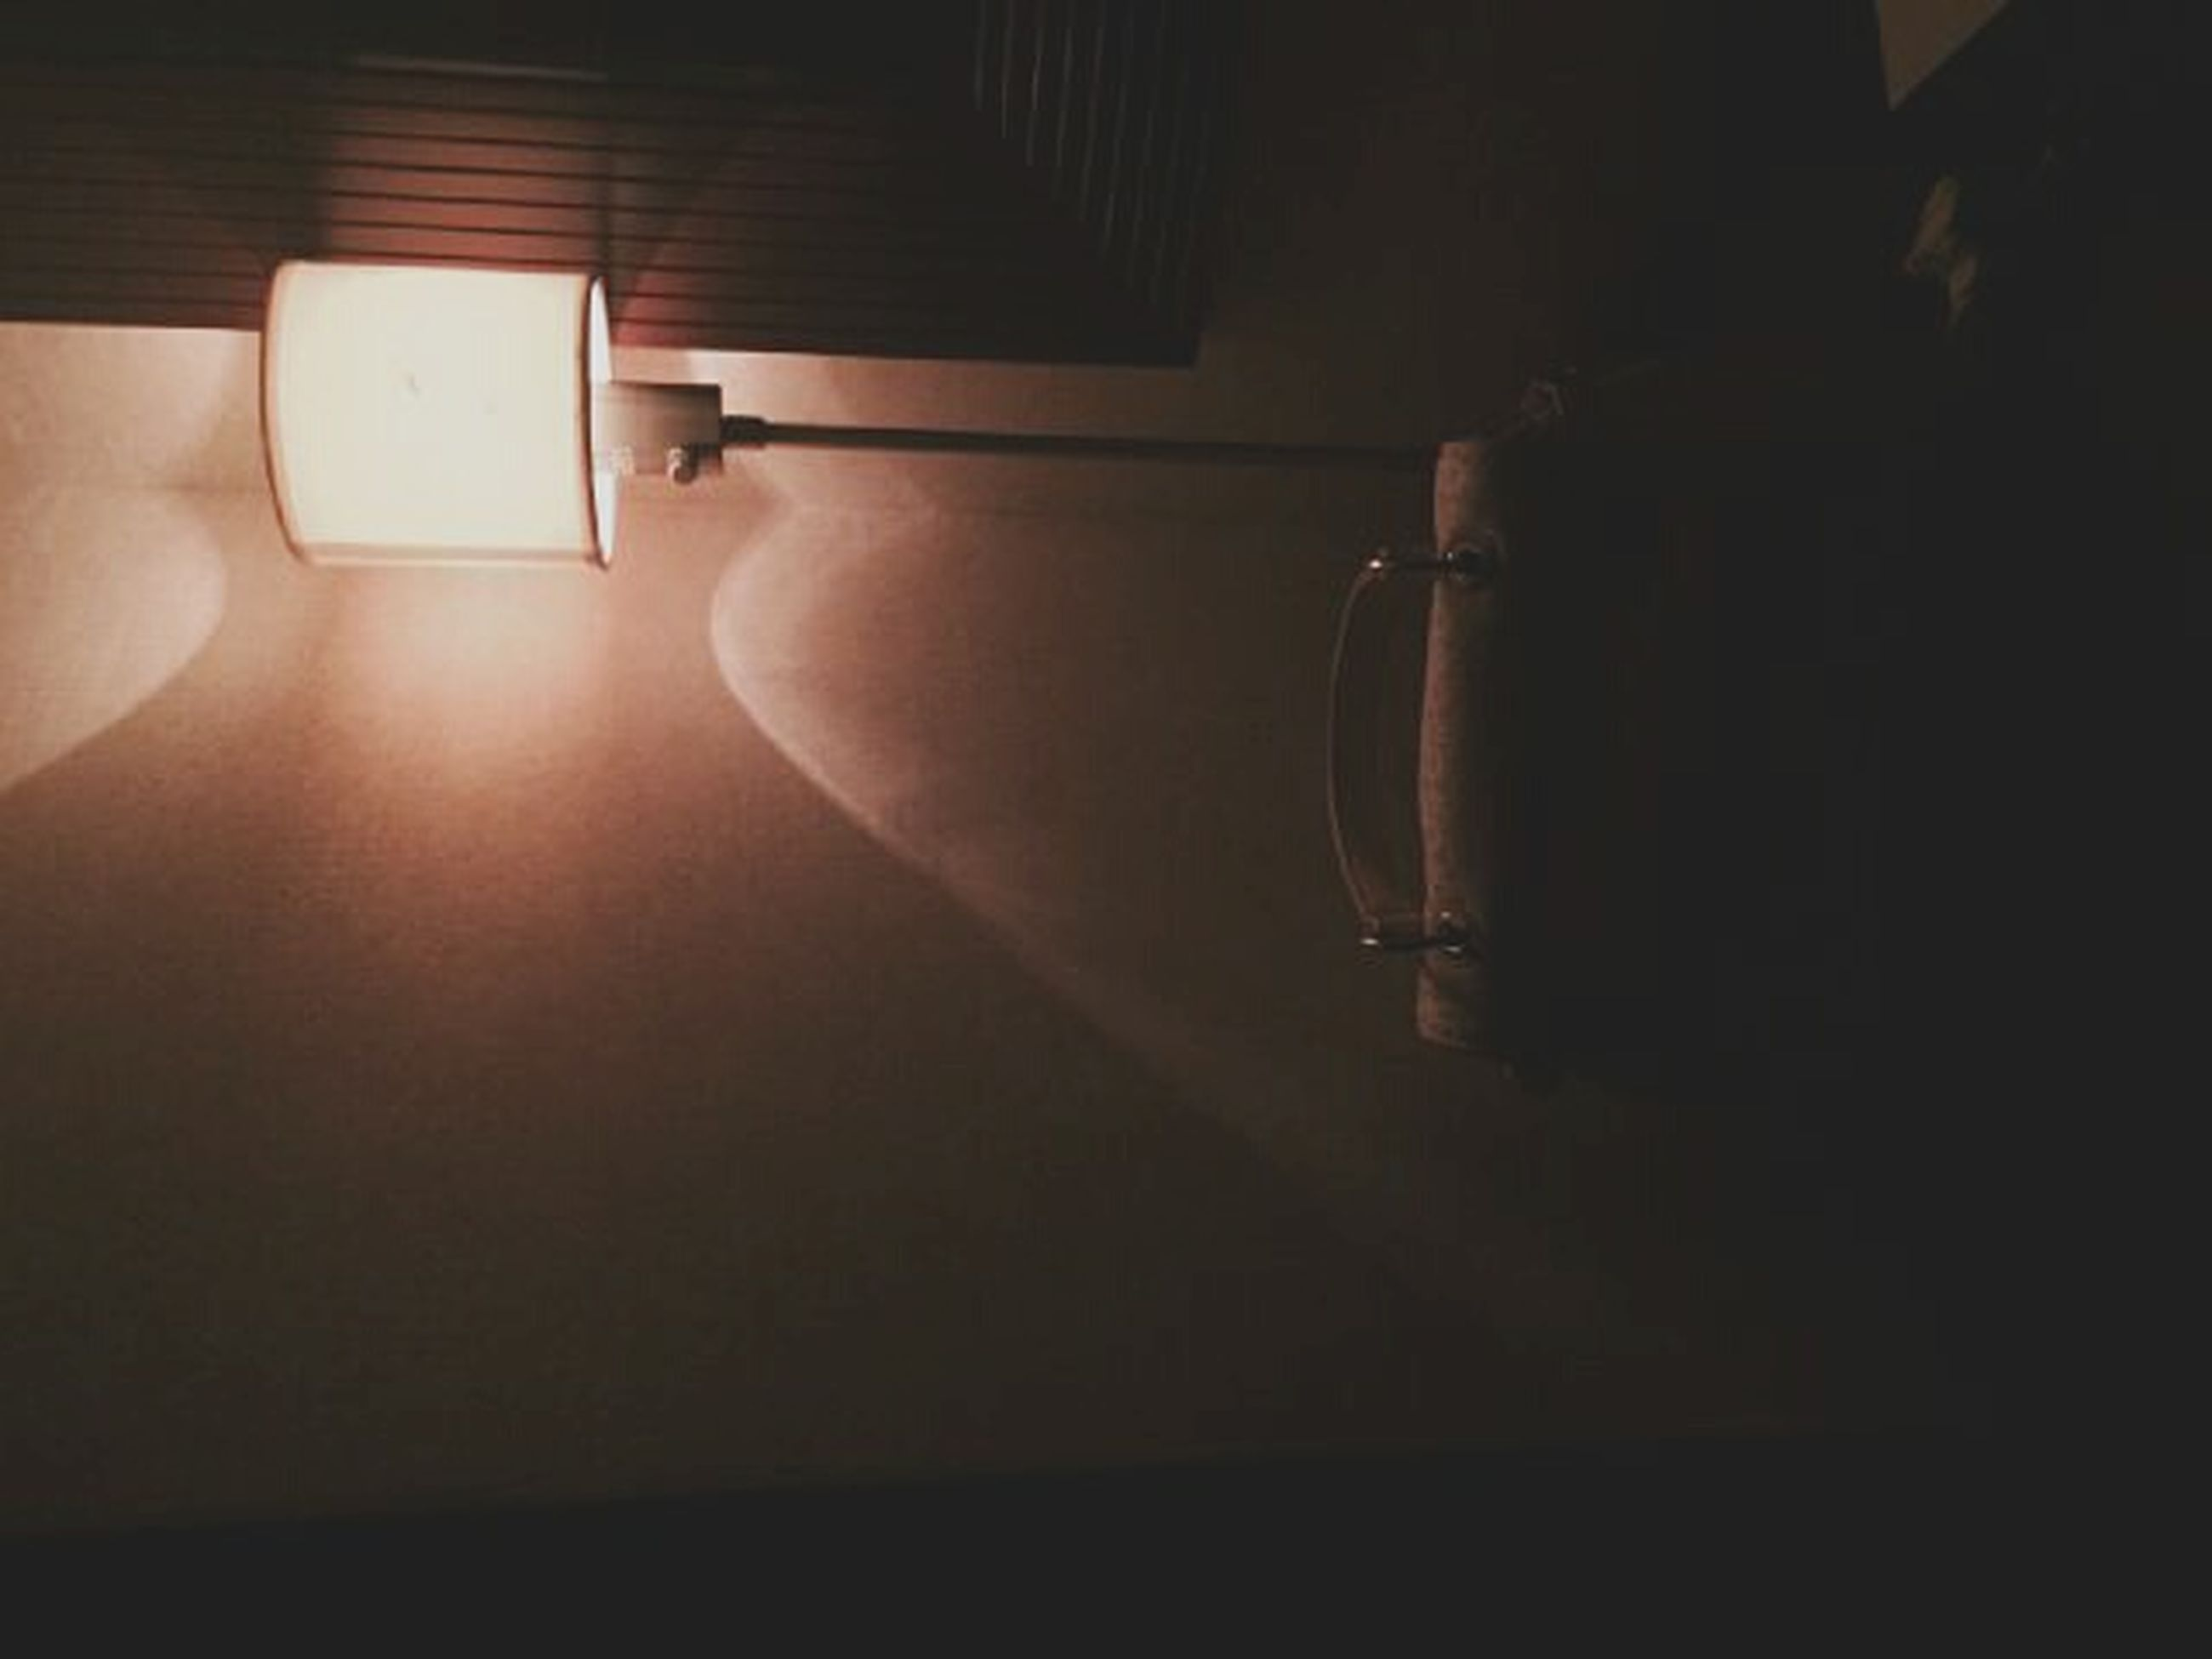 indoors, illuminated, lighting equipment, wall - building feature, electricity, home interior, absence, electric lamp, empty, light - natural phenomenon, electric light, lamp, room, no people, dark, domestic room, wall, darkroom, architecture, ceiling